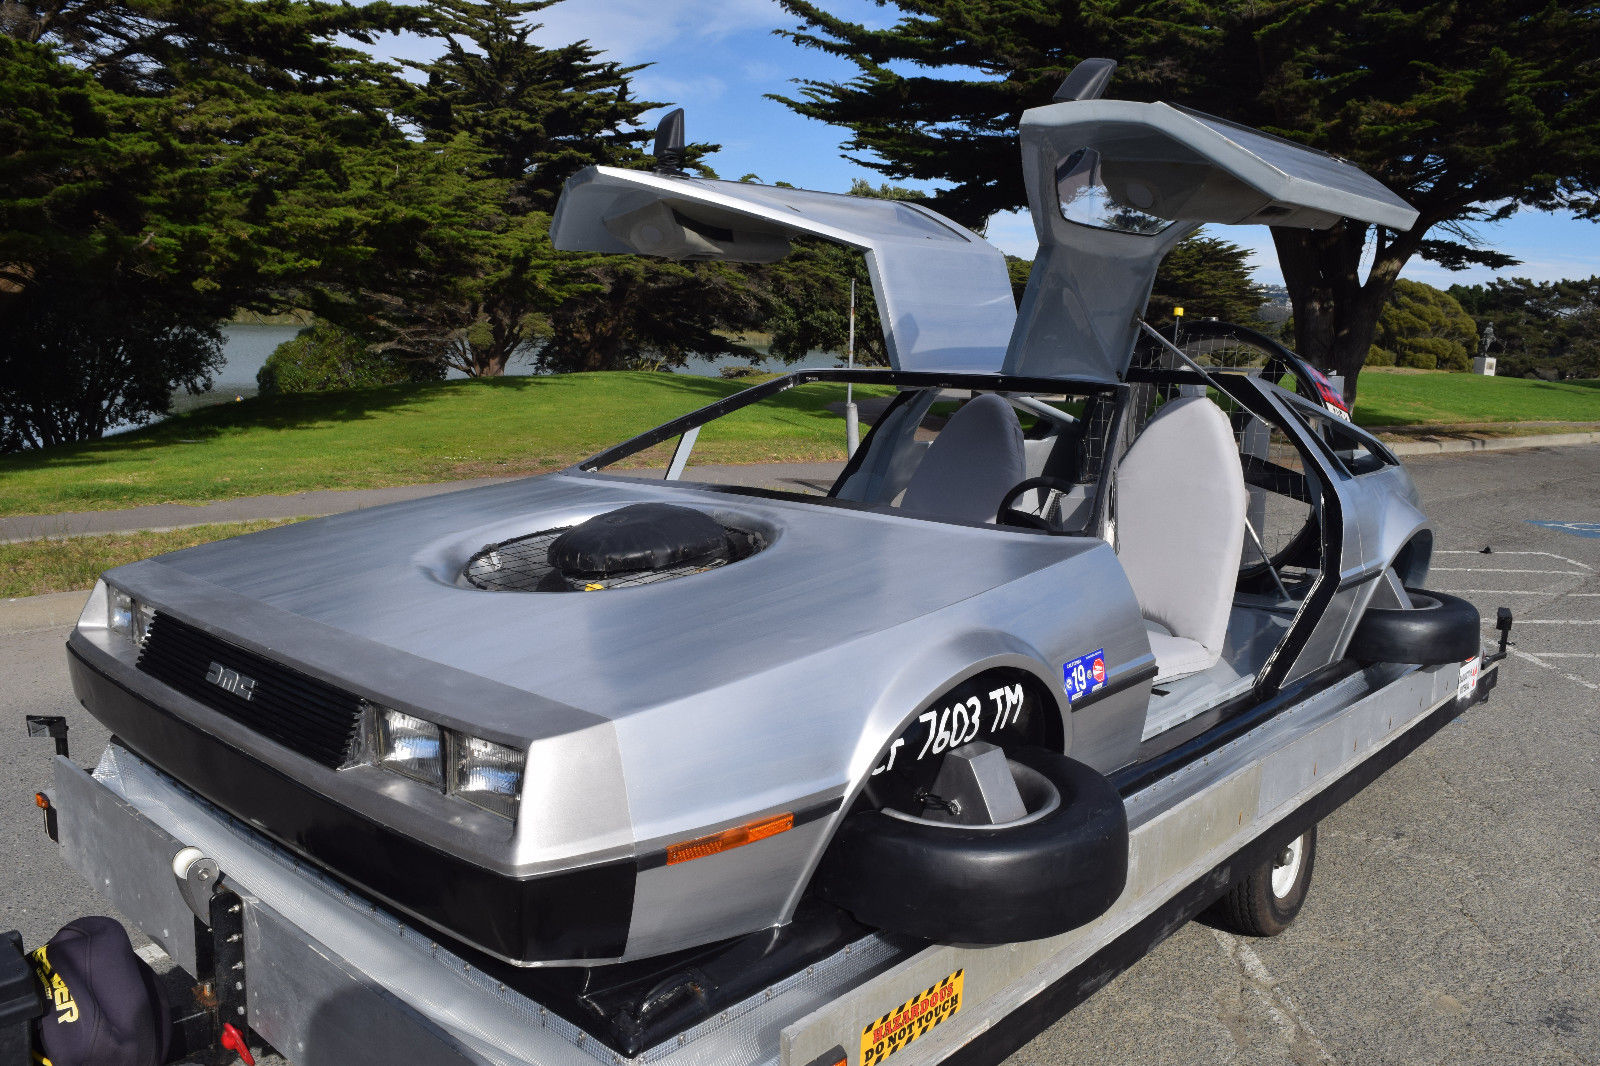 delorean hovercraft front 3/4 doors up